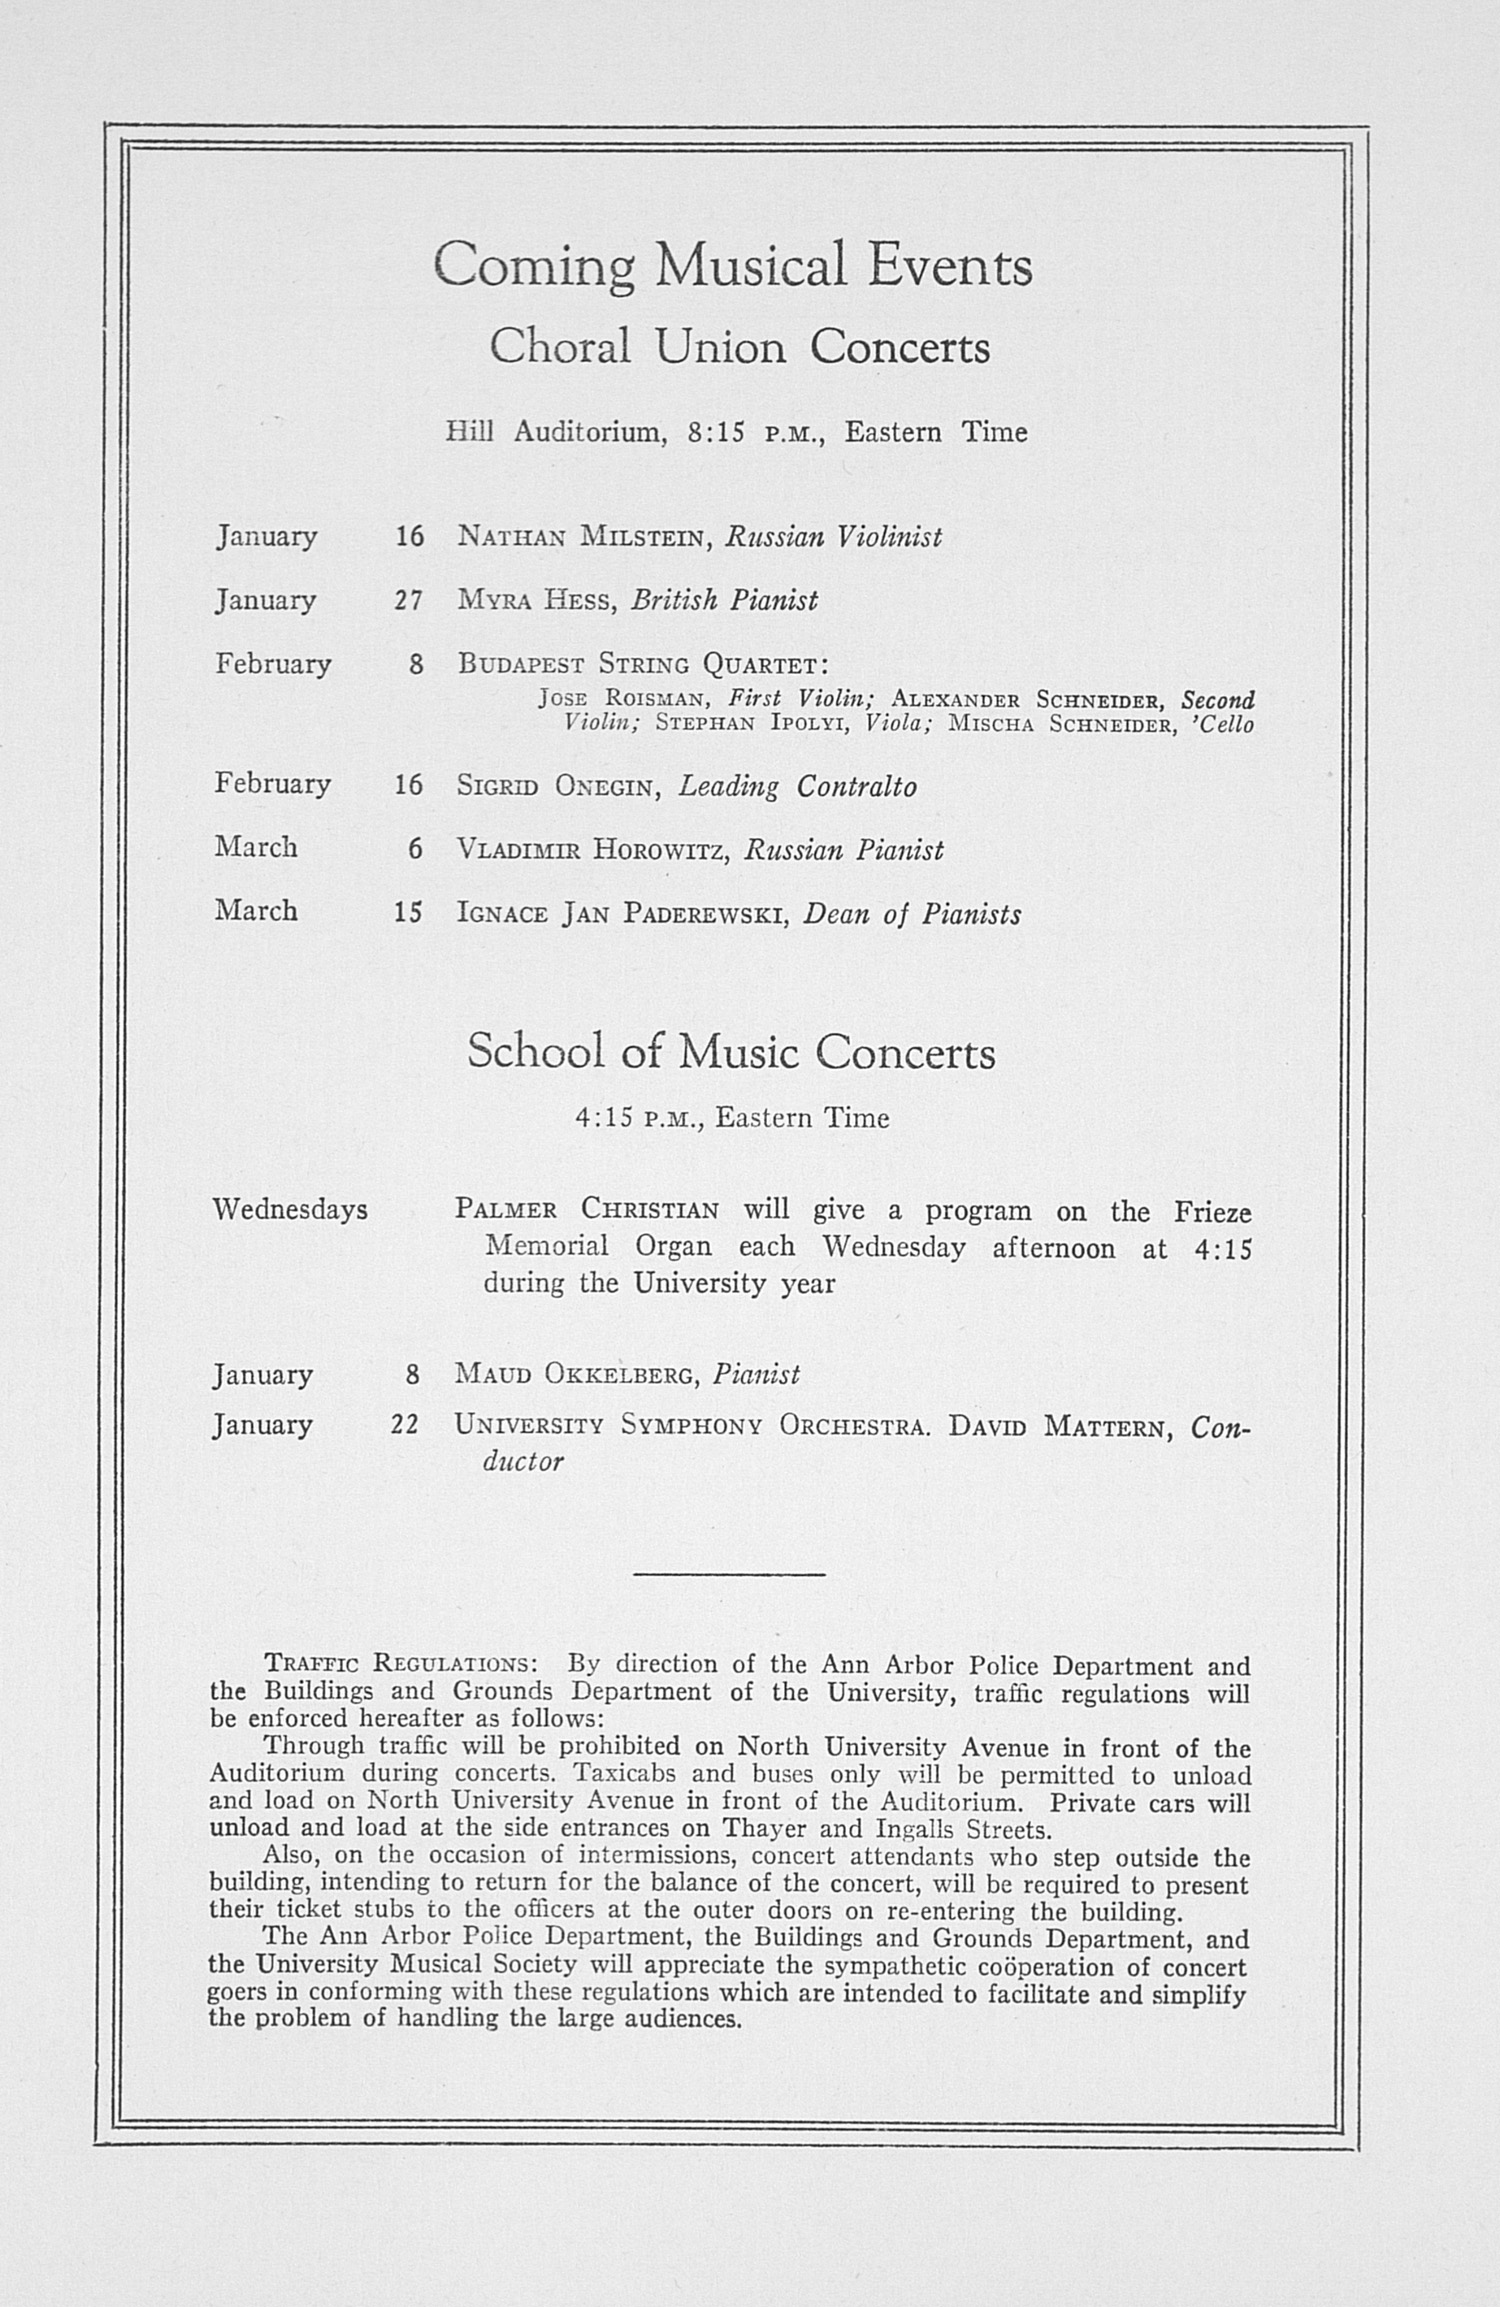 UMS Concert Program, December 12, 1932: Fifty-fourth Annual Choral Union Concert Series -- Efrem Zimbalist image